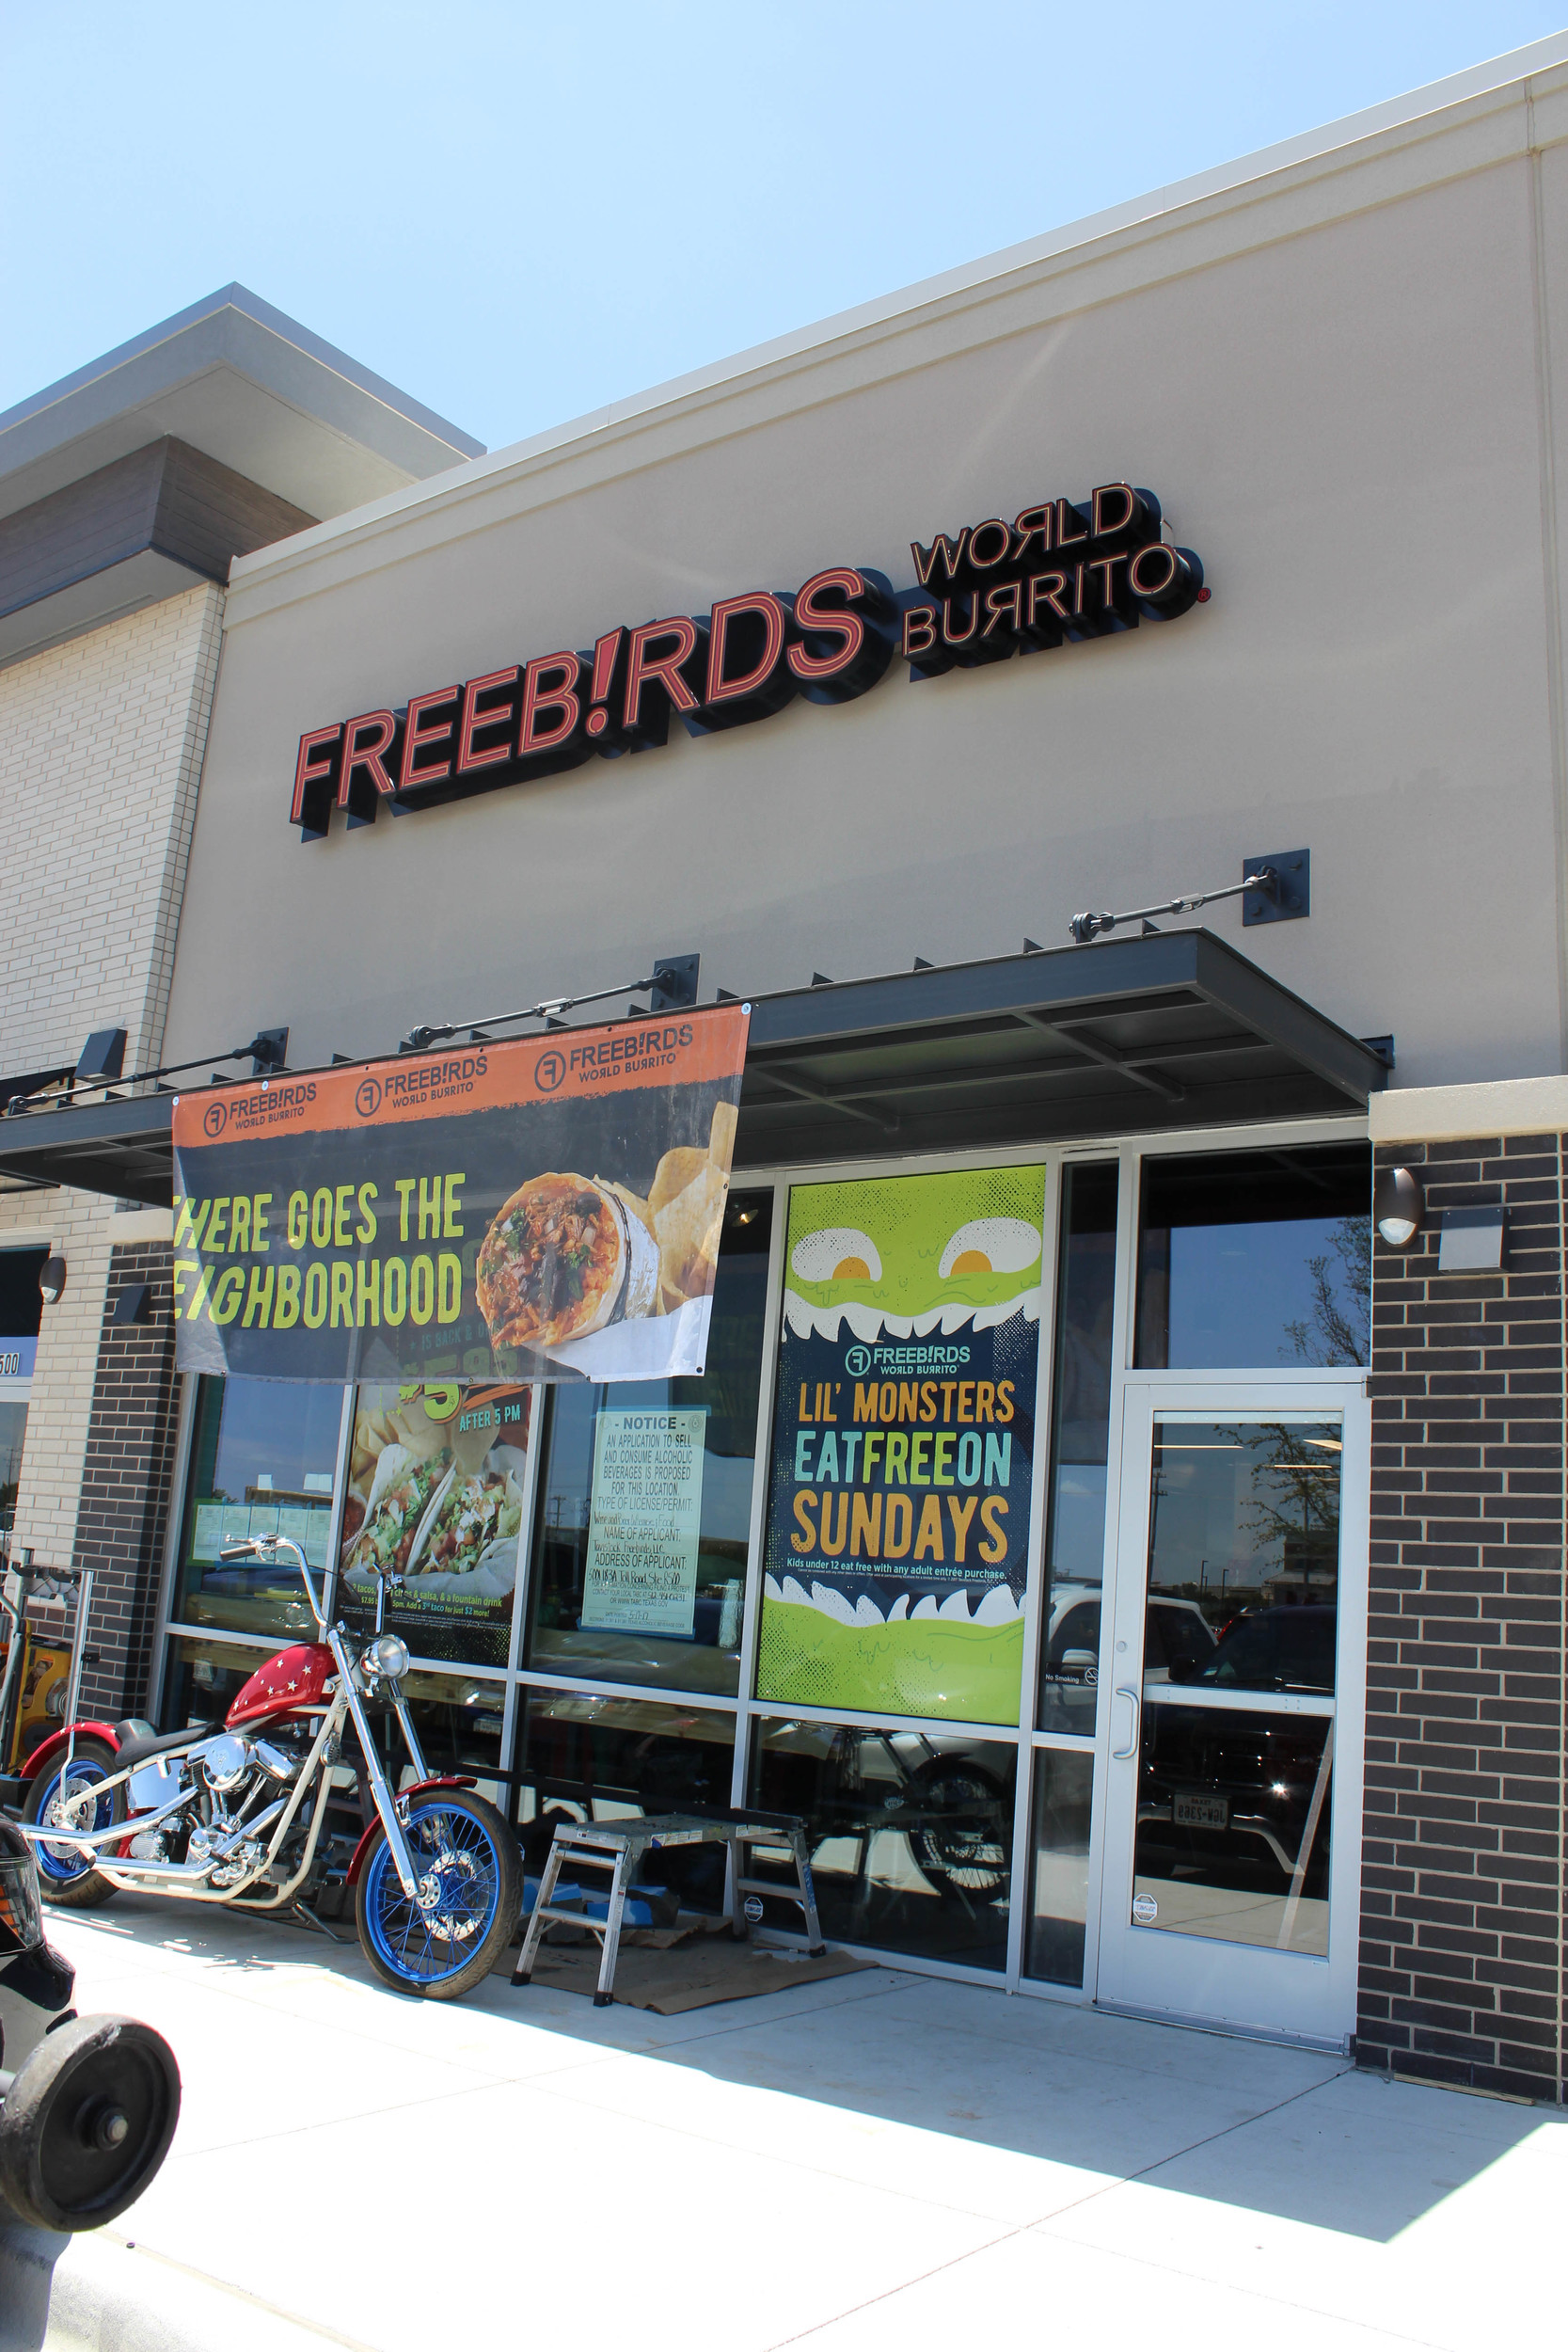 Freebirds World Burrito is now open in Cedar Park's Parke retail center at 5001 183A Toll Rd. Ste. R500.